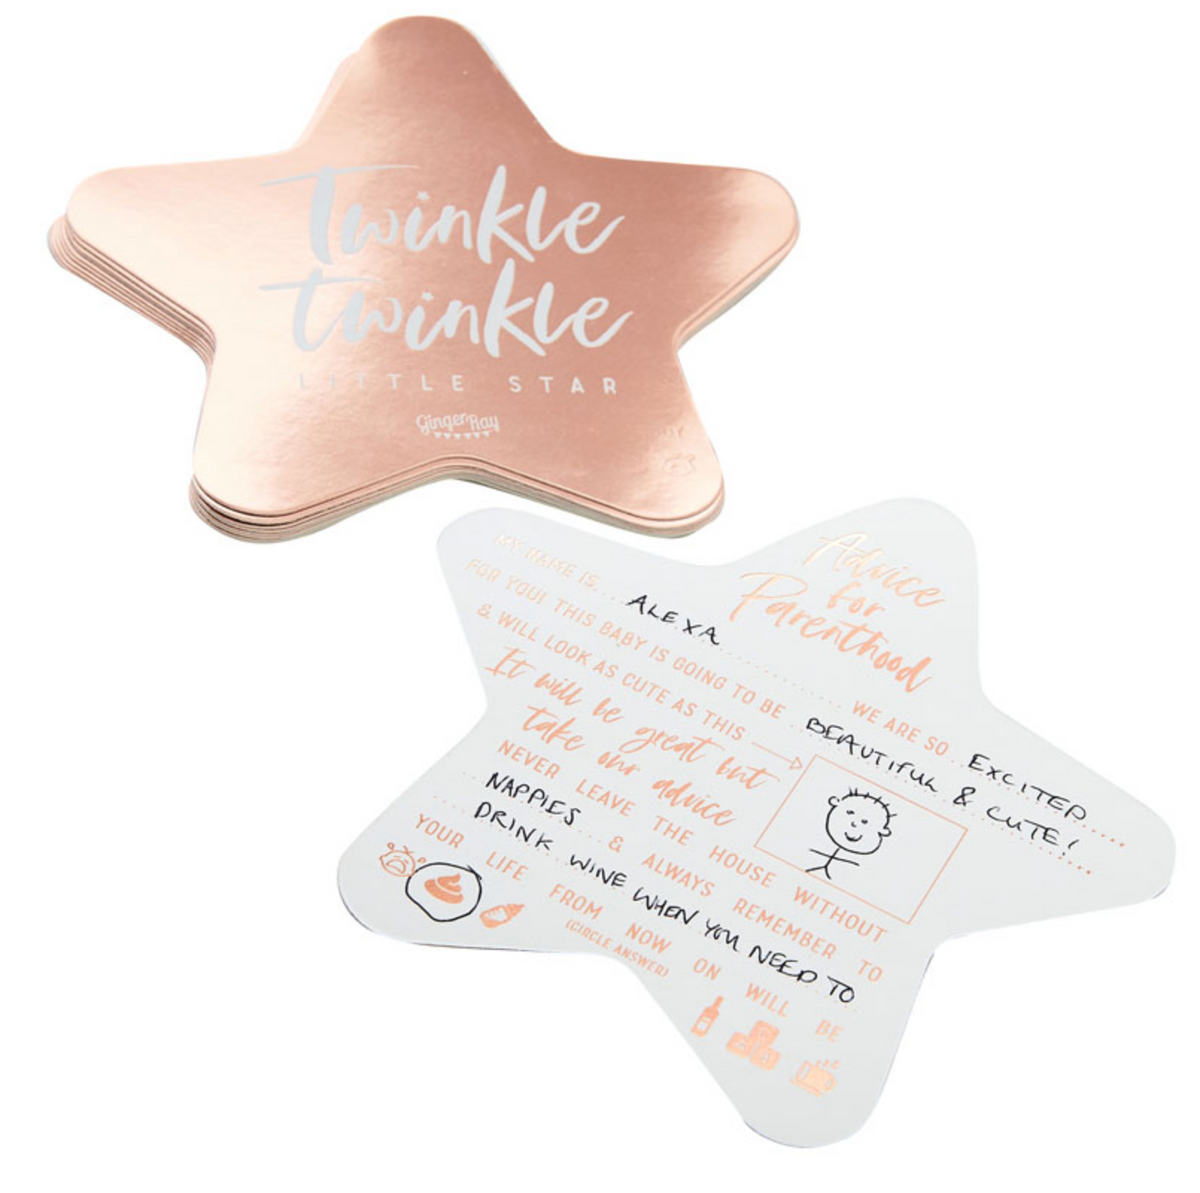 Twinkle Twinkle Baby Shower - Advice Cards